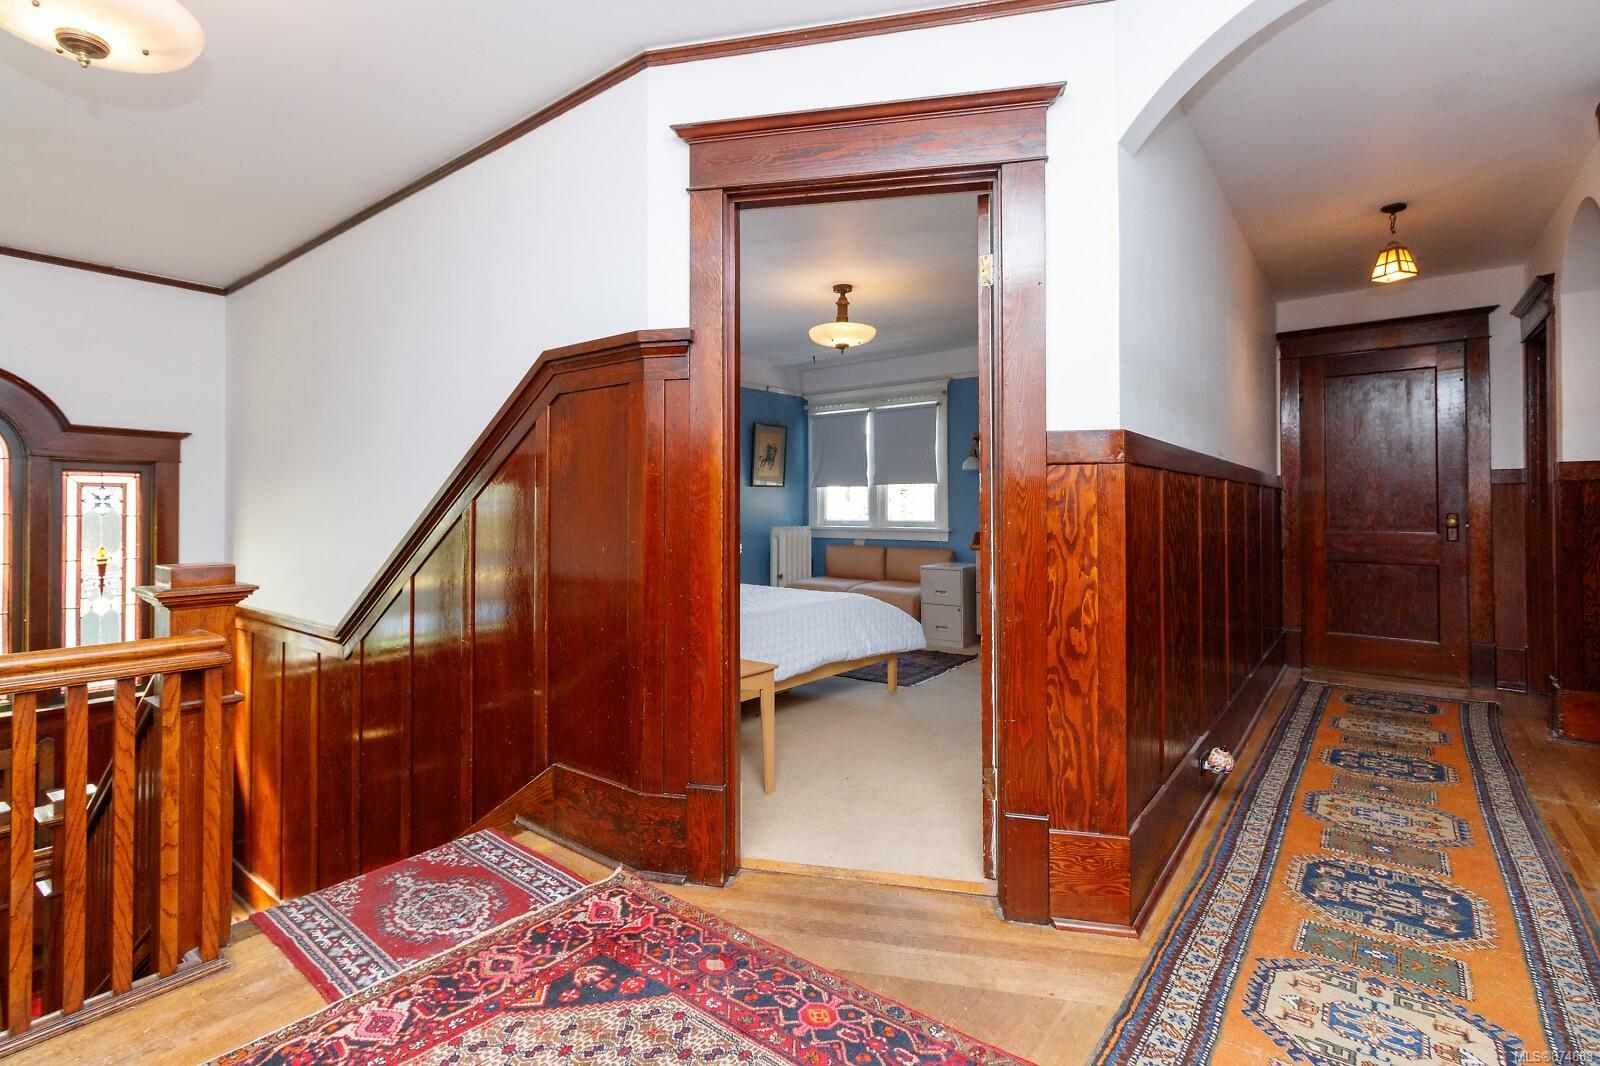 Photo 24 at 3 - 830 St. Charles Street, Rockland, Victoria